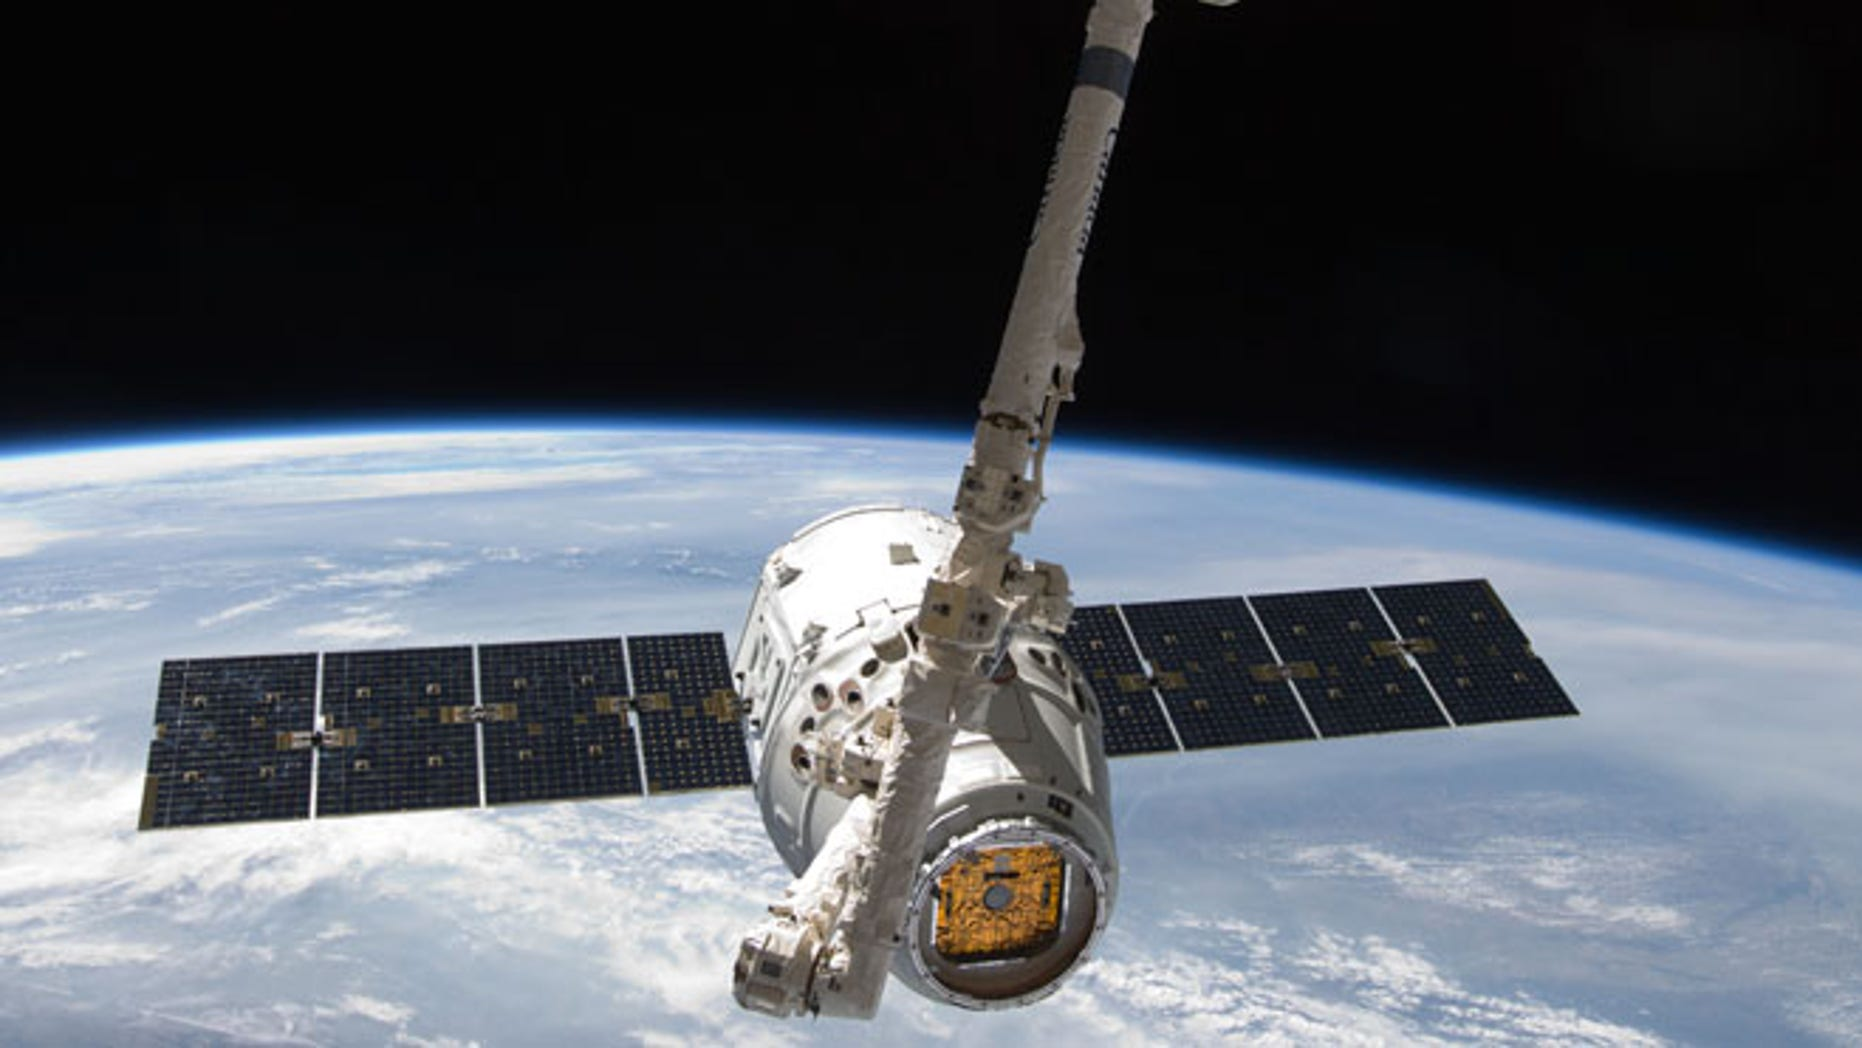 May 25, 2012: View from the International Space Station of the SpaceX Dragon spacecraft as the stations robotic arm moves Dragon into place for attachment to the station.